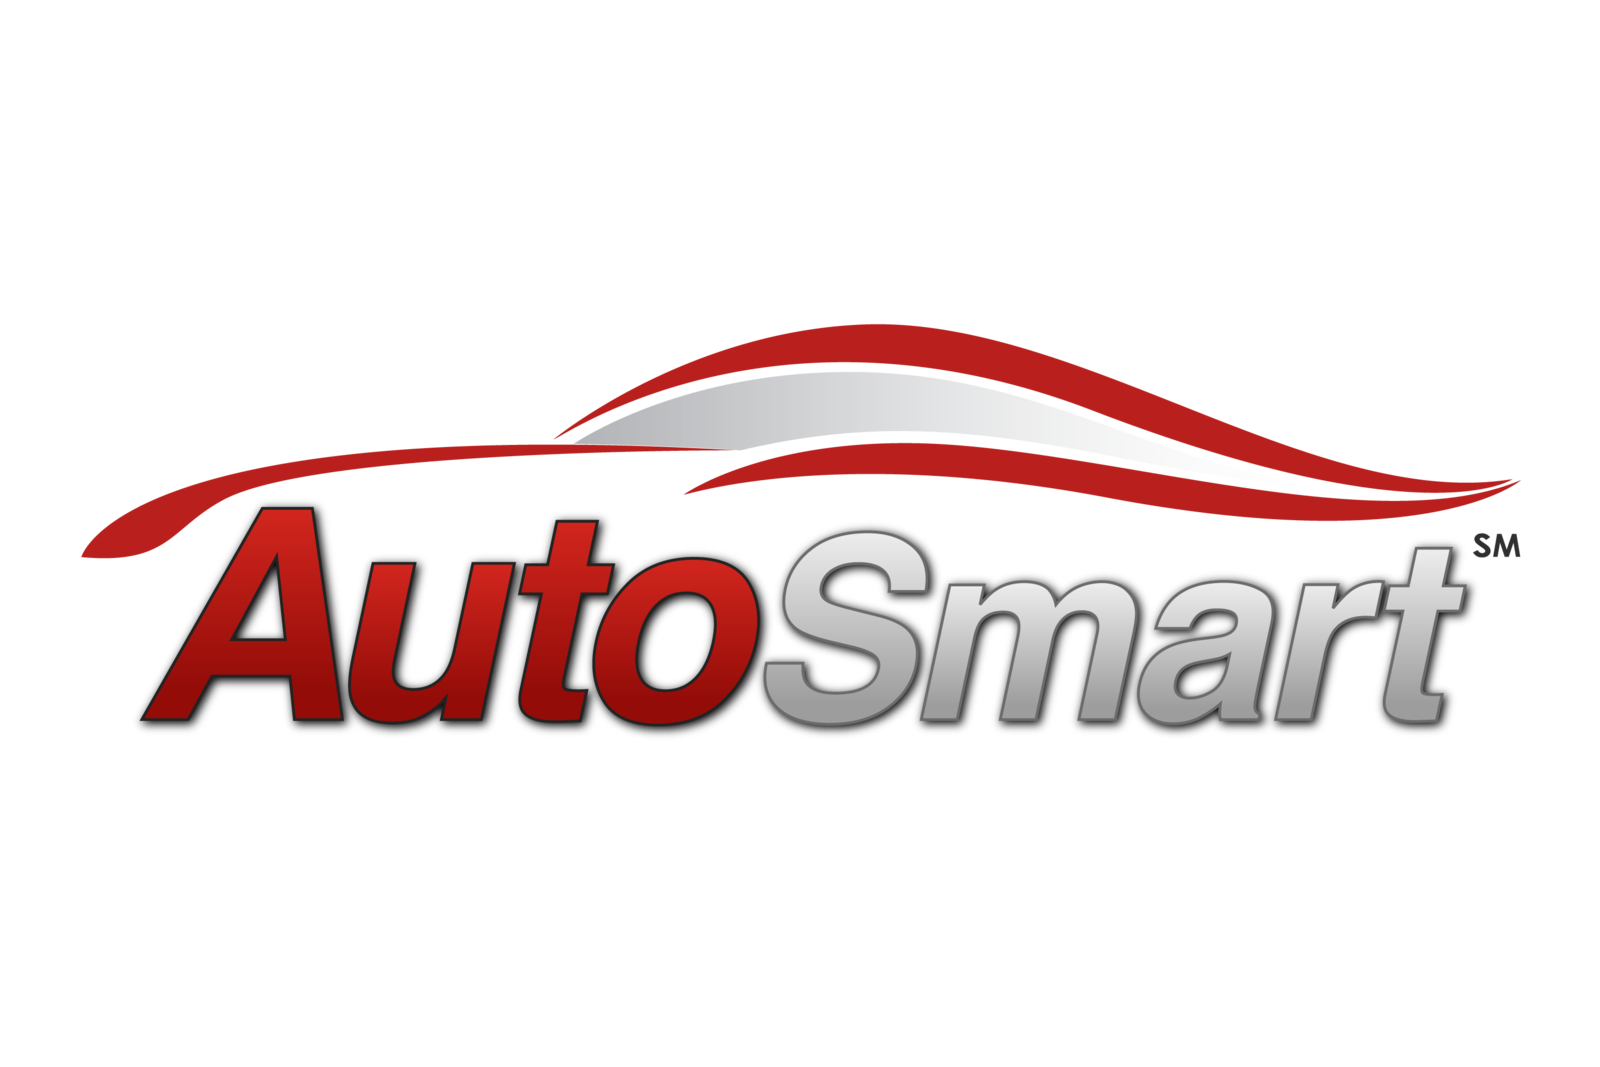 AutoSmart - Oswego, IL: Read Consumer reviews, Browse Used ...